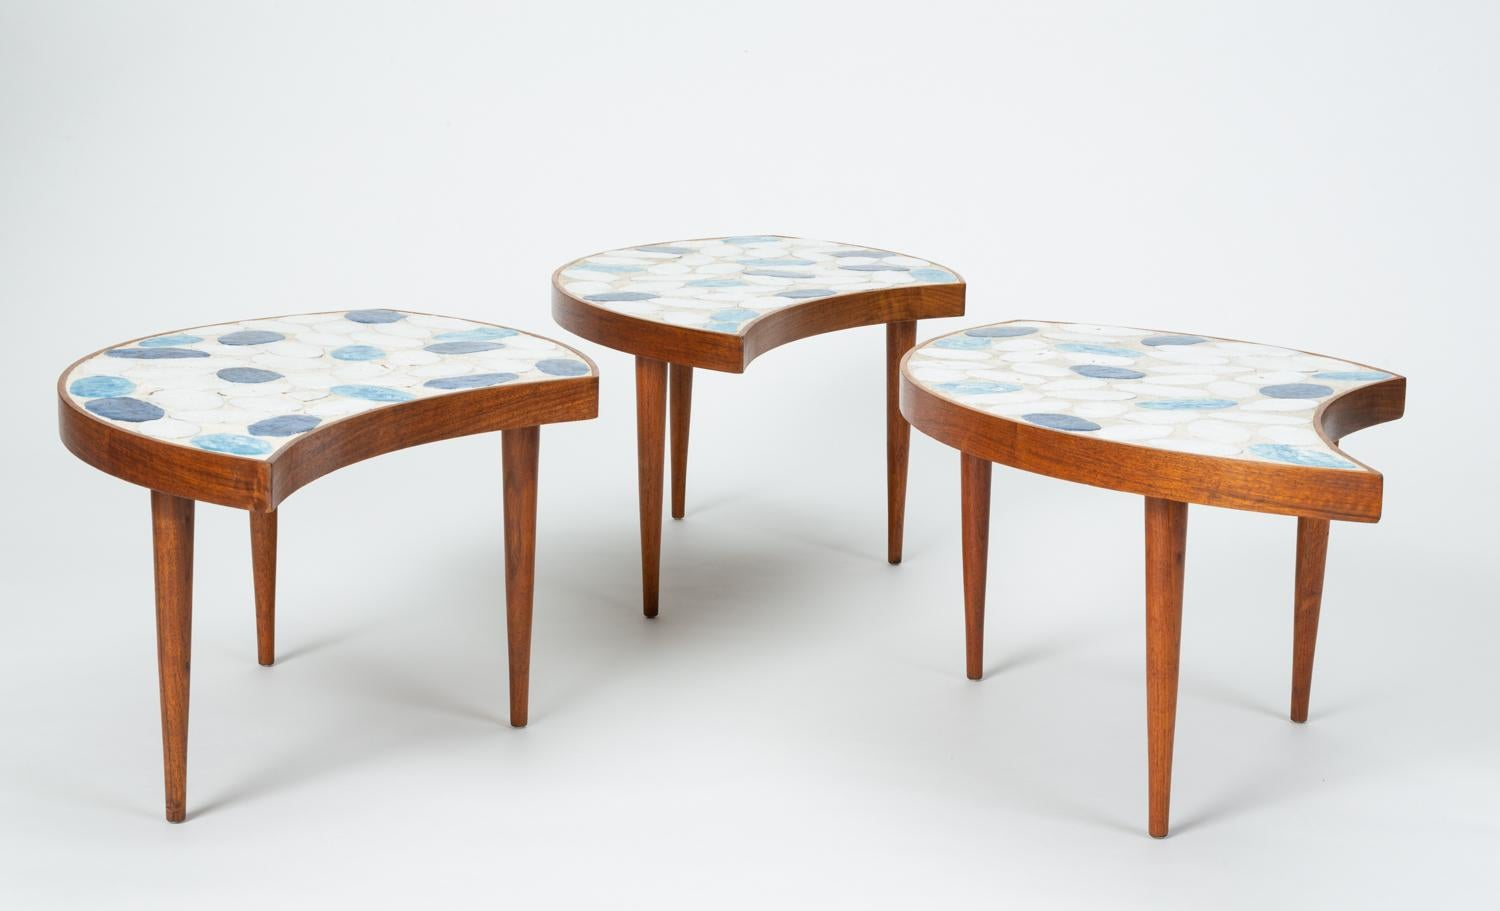 Three Piece Round Coffee Table With Ceramic Tile Top At 1stdibs